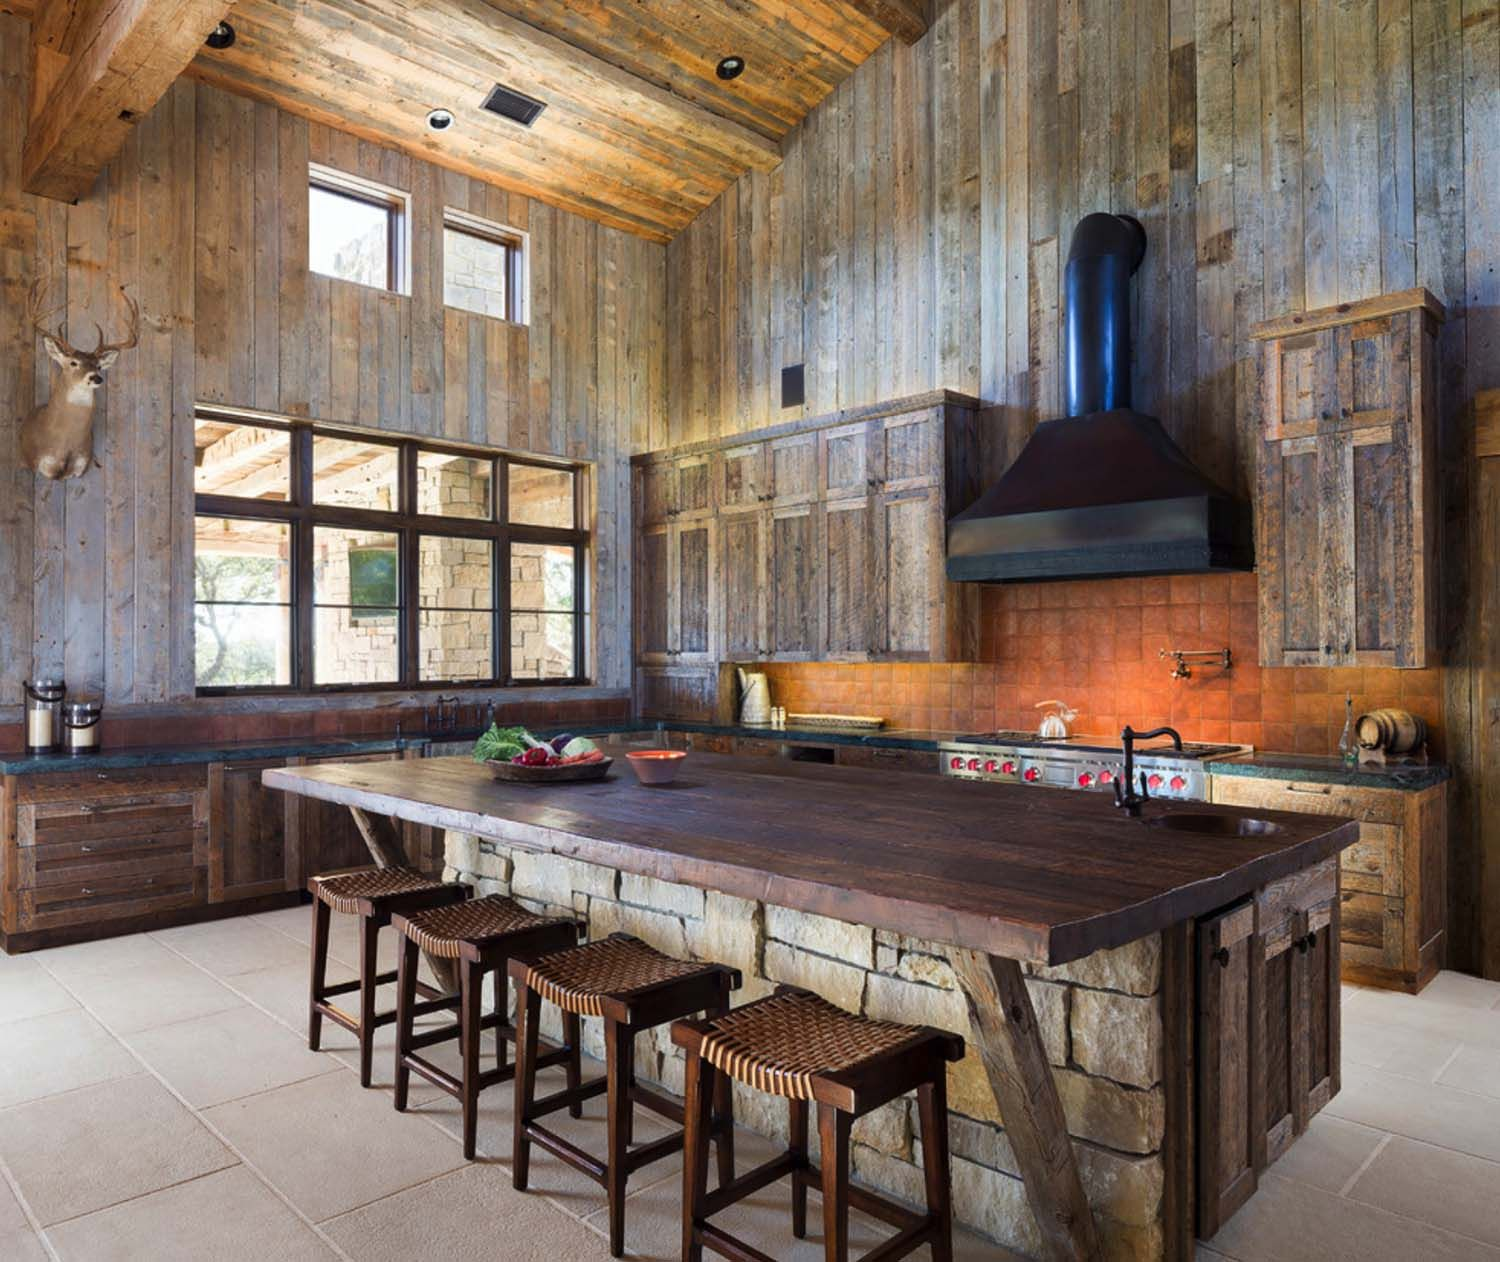 Western Kitchen Decor Backsplash Trends Modern Rustic Barn Style Retreat In Texas Hill Country